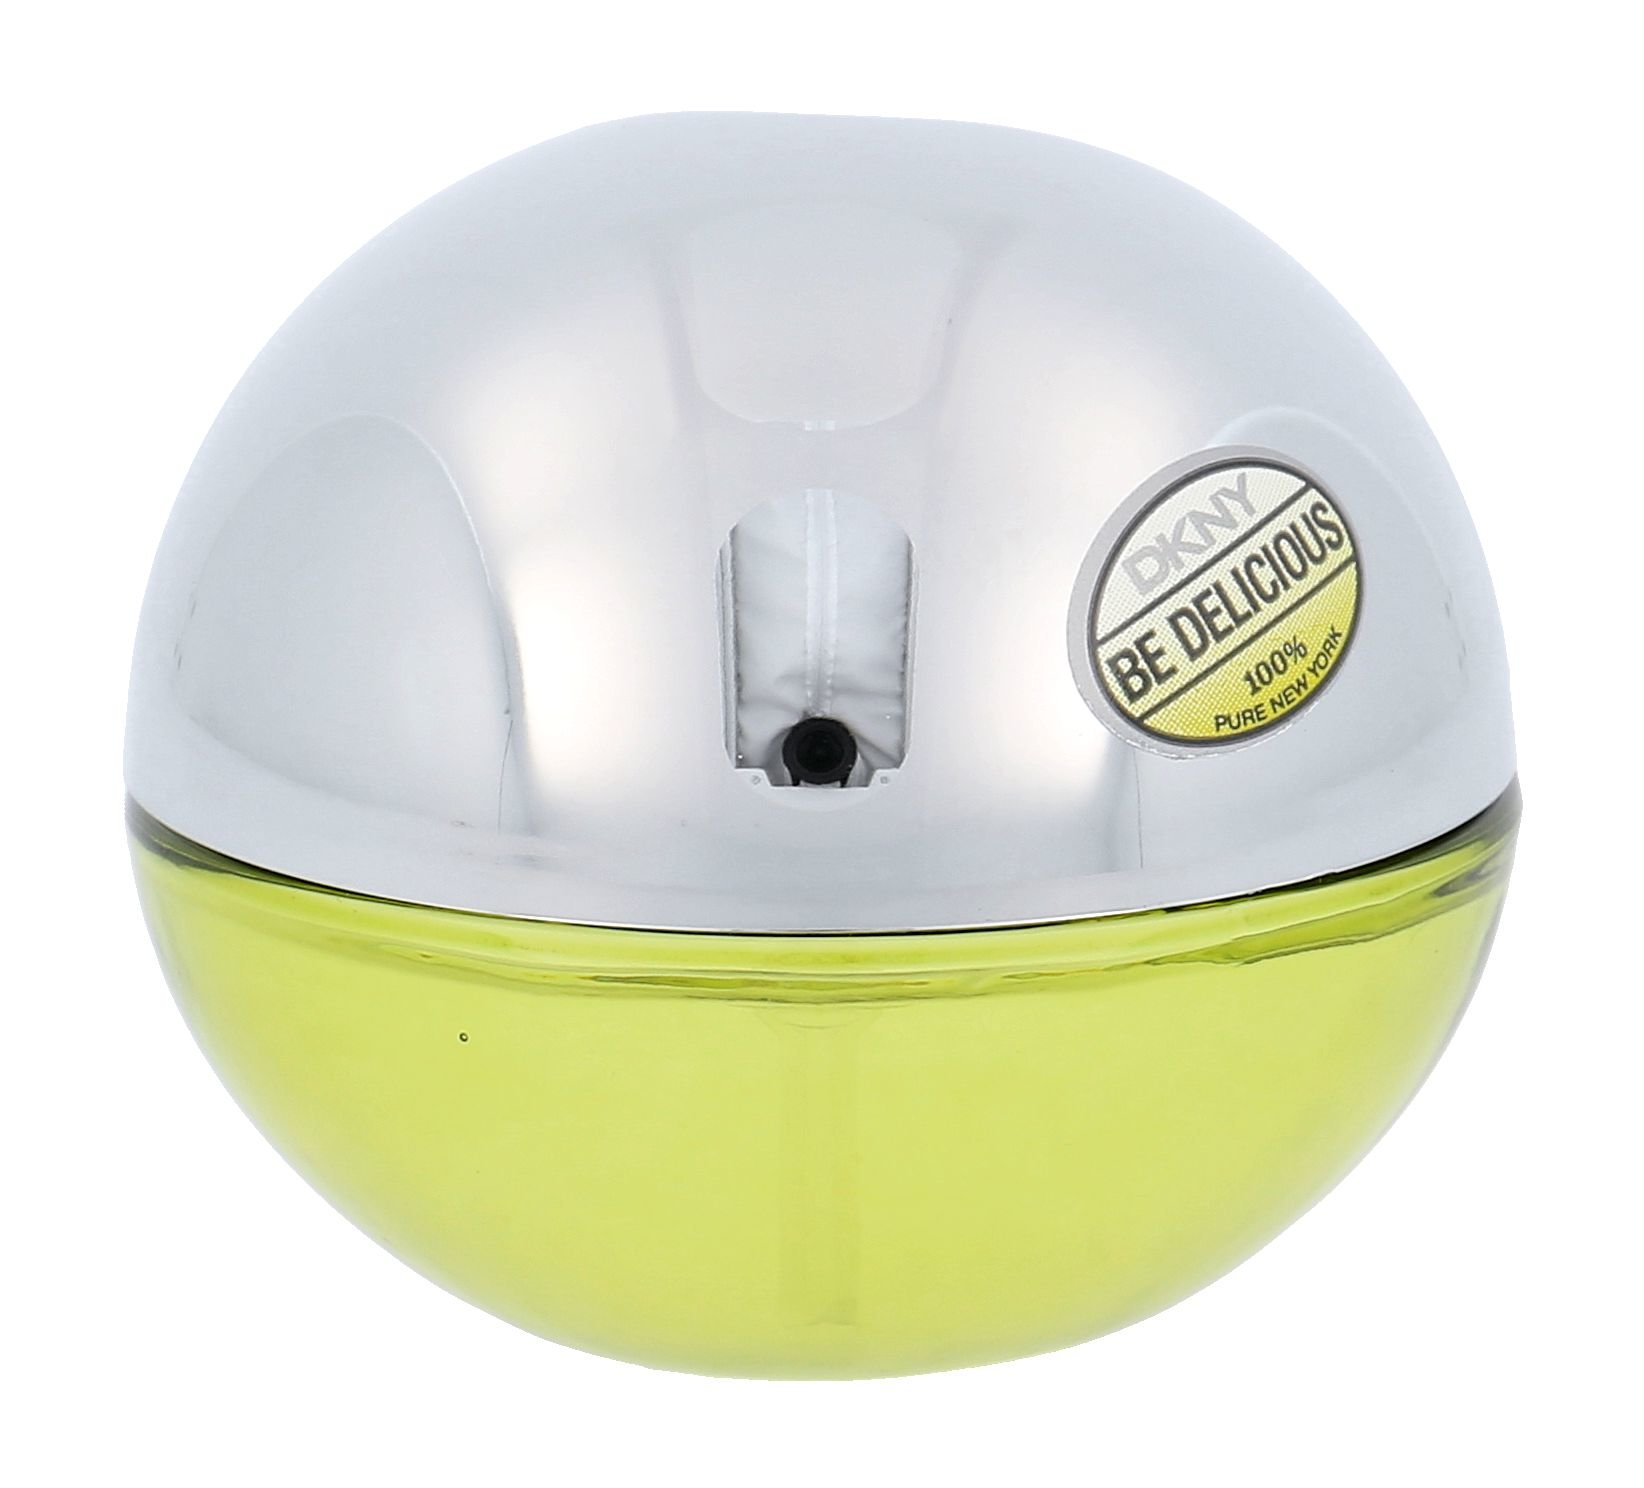 DKNY DKNY Be Delicious EDP 15ml